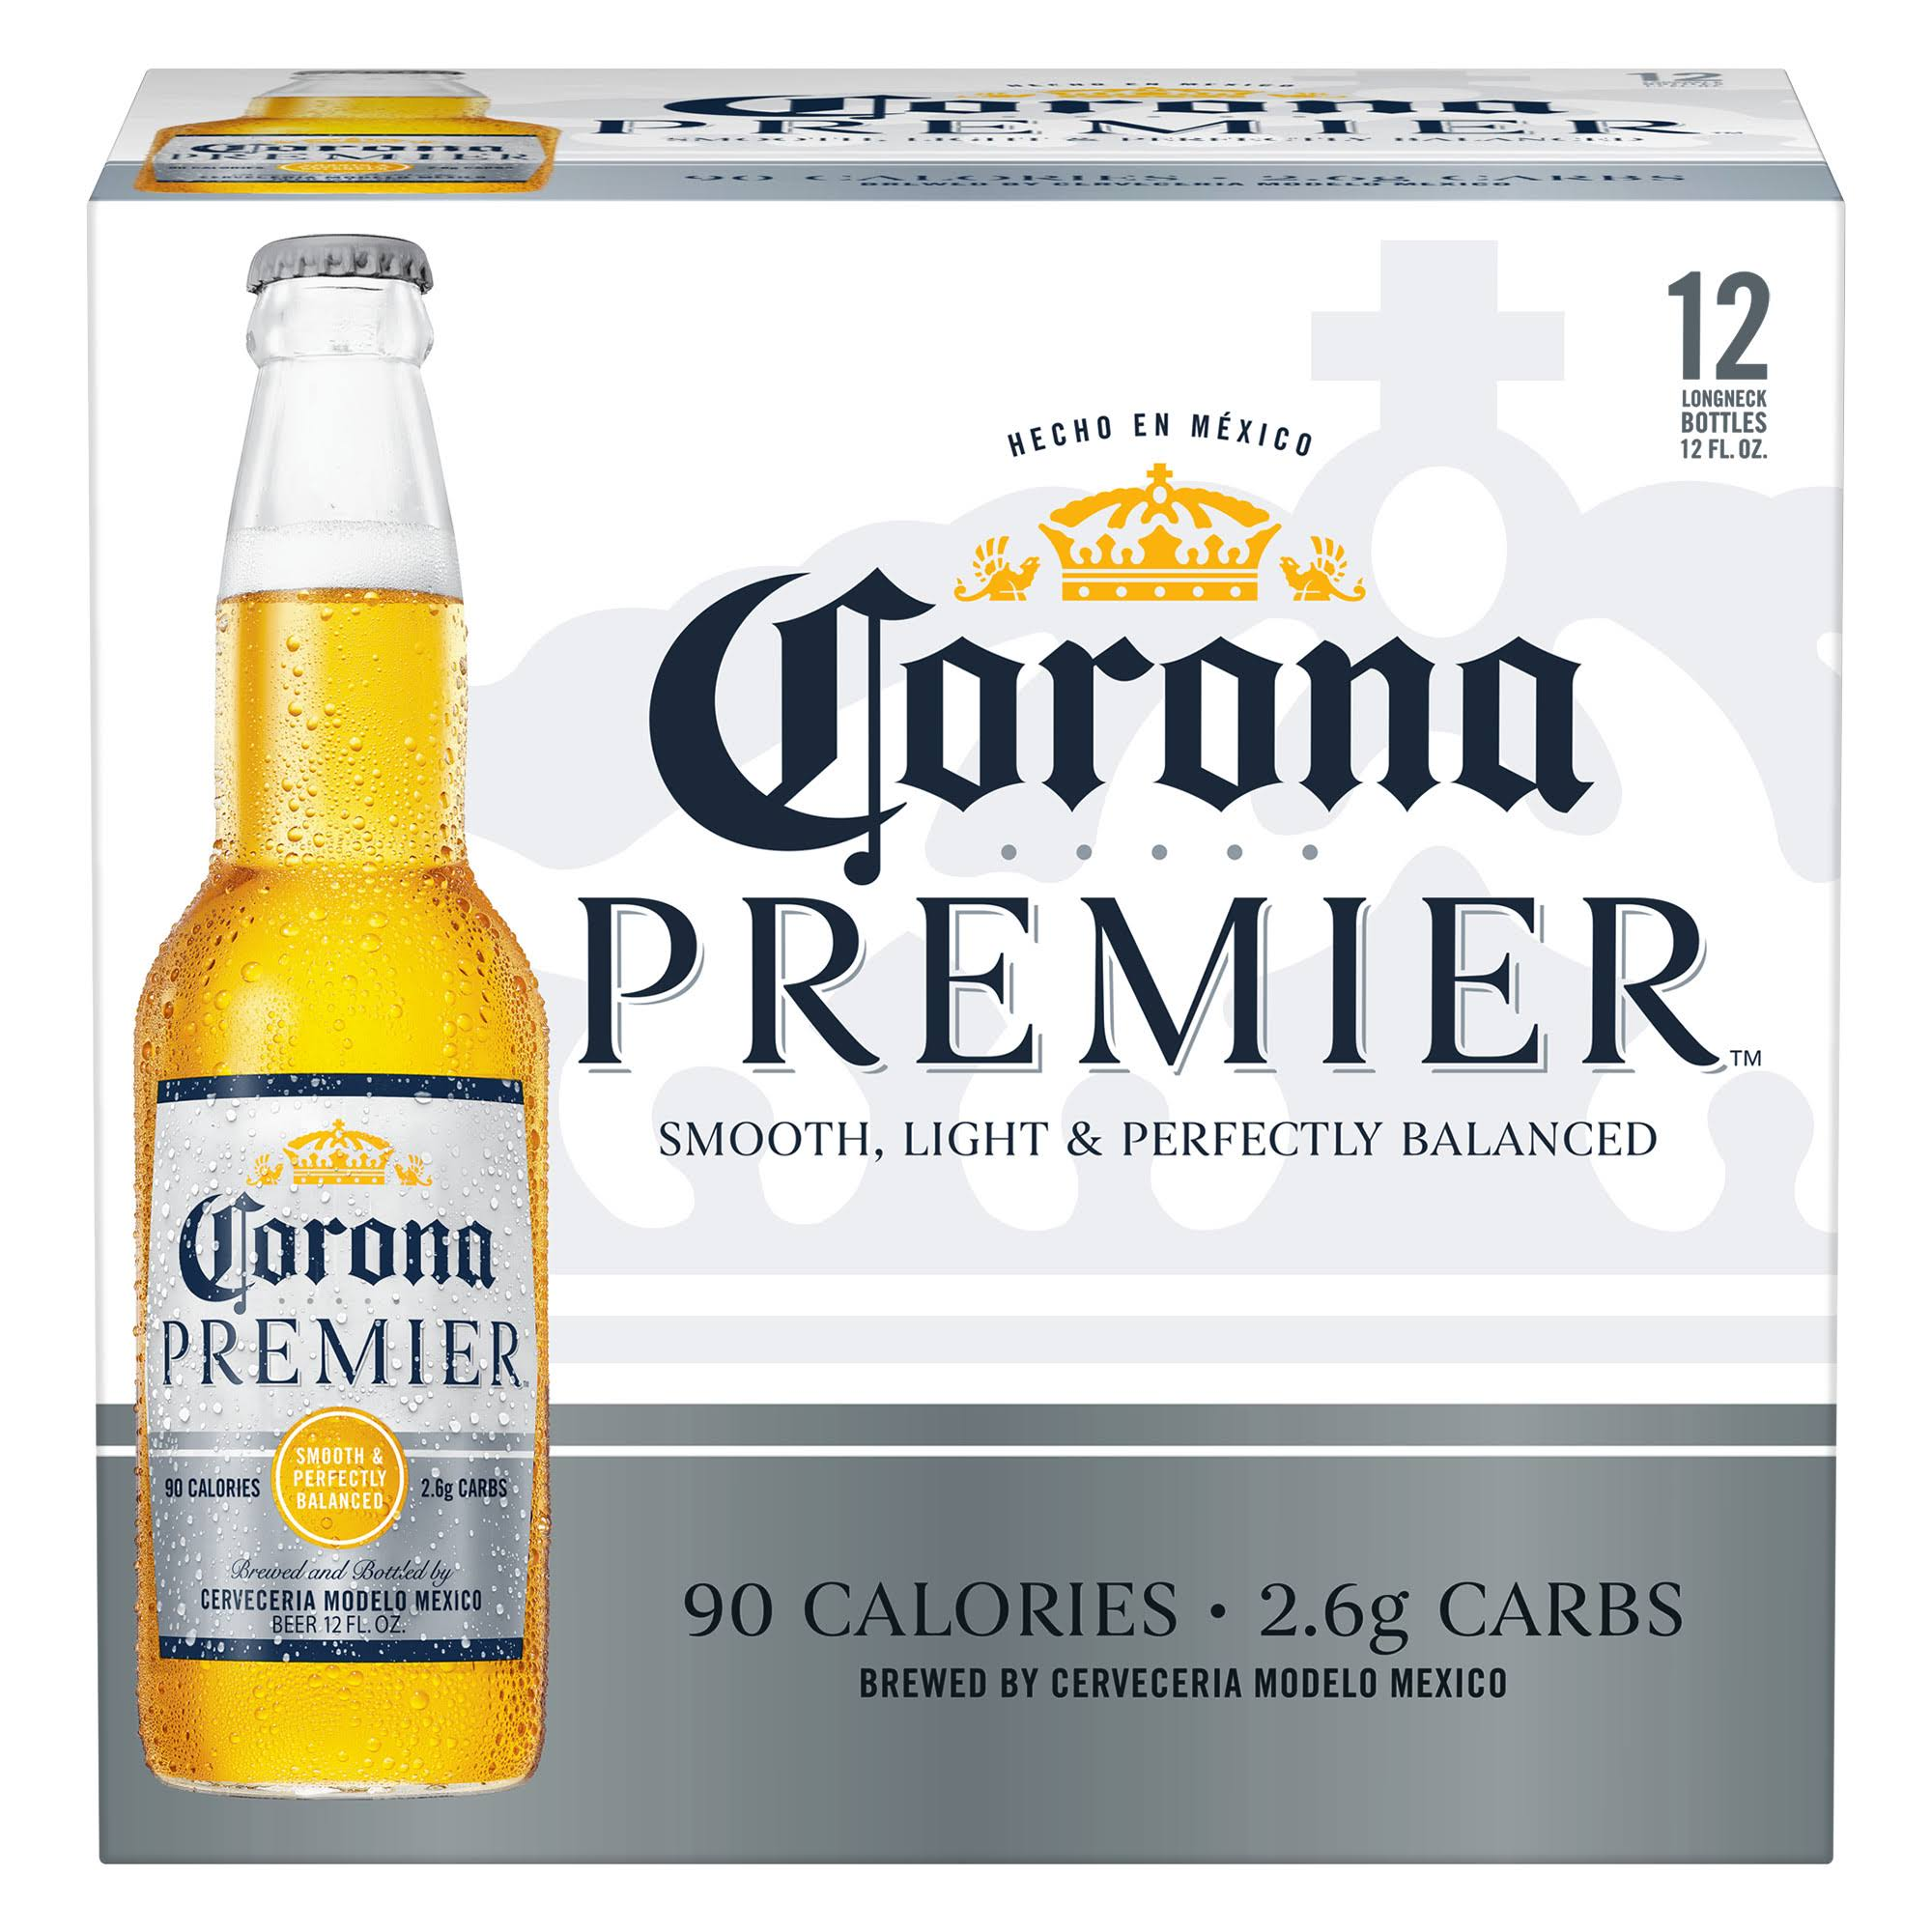 Corona Premier Beer - 12 pack, 12 fl oz bottles